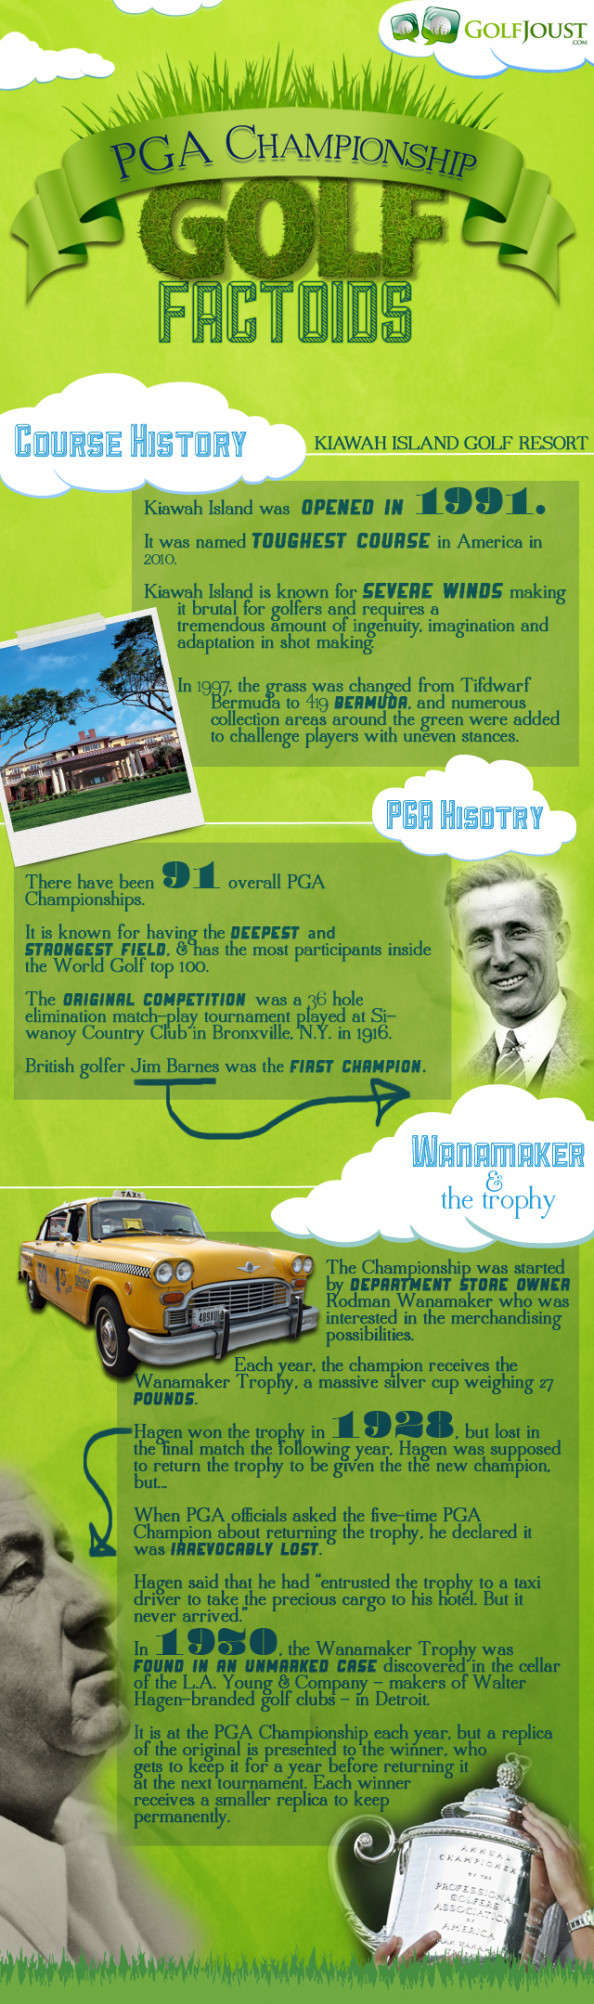 PGA Championship Golf Factoids Infographic